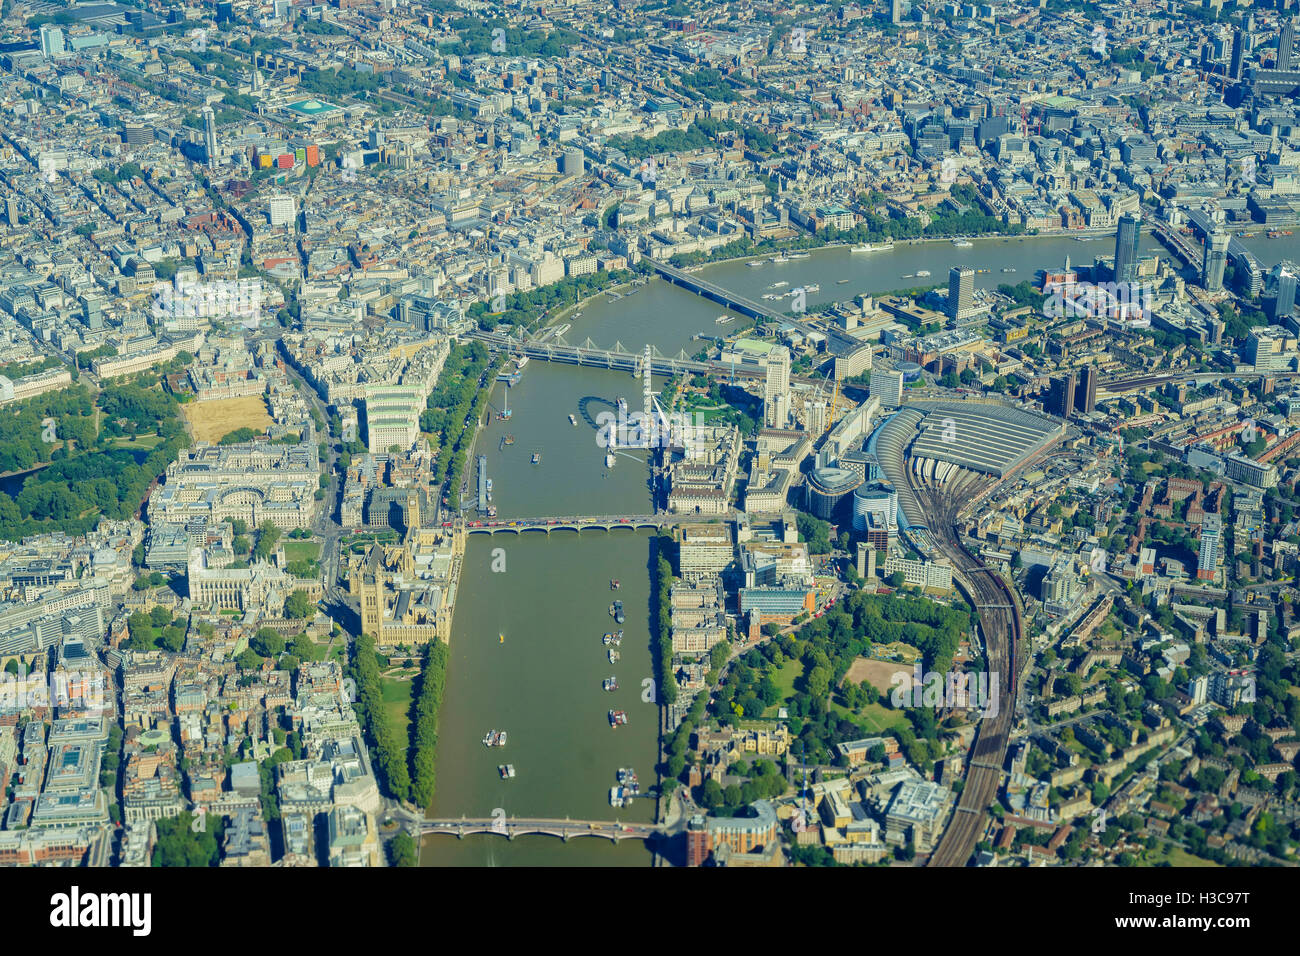 Aerial view of St James's Park, Westminster, Lambeth, Waterloo, Covent Garden, Holborn, Temple of London, United - Stock Image